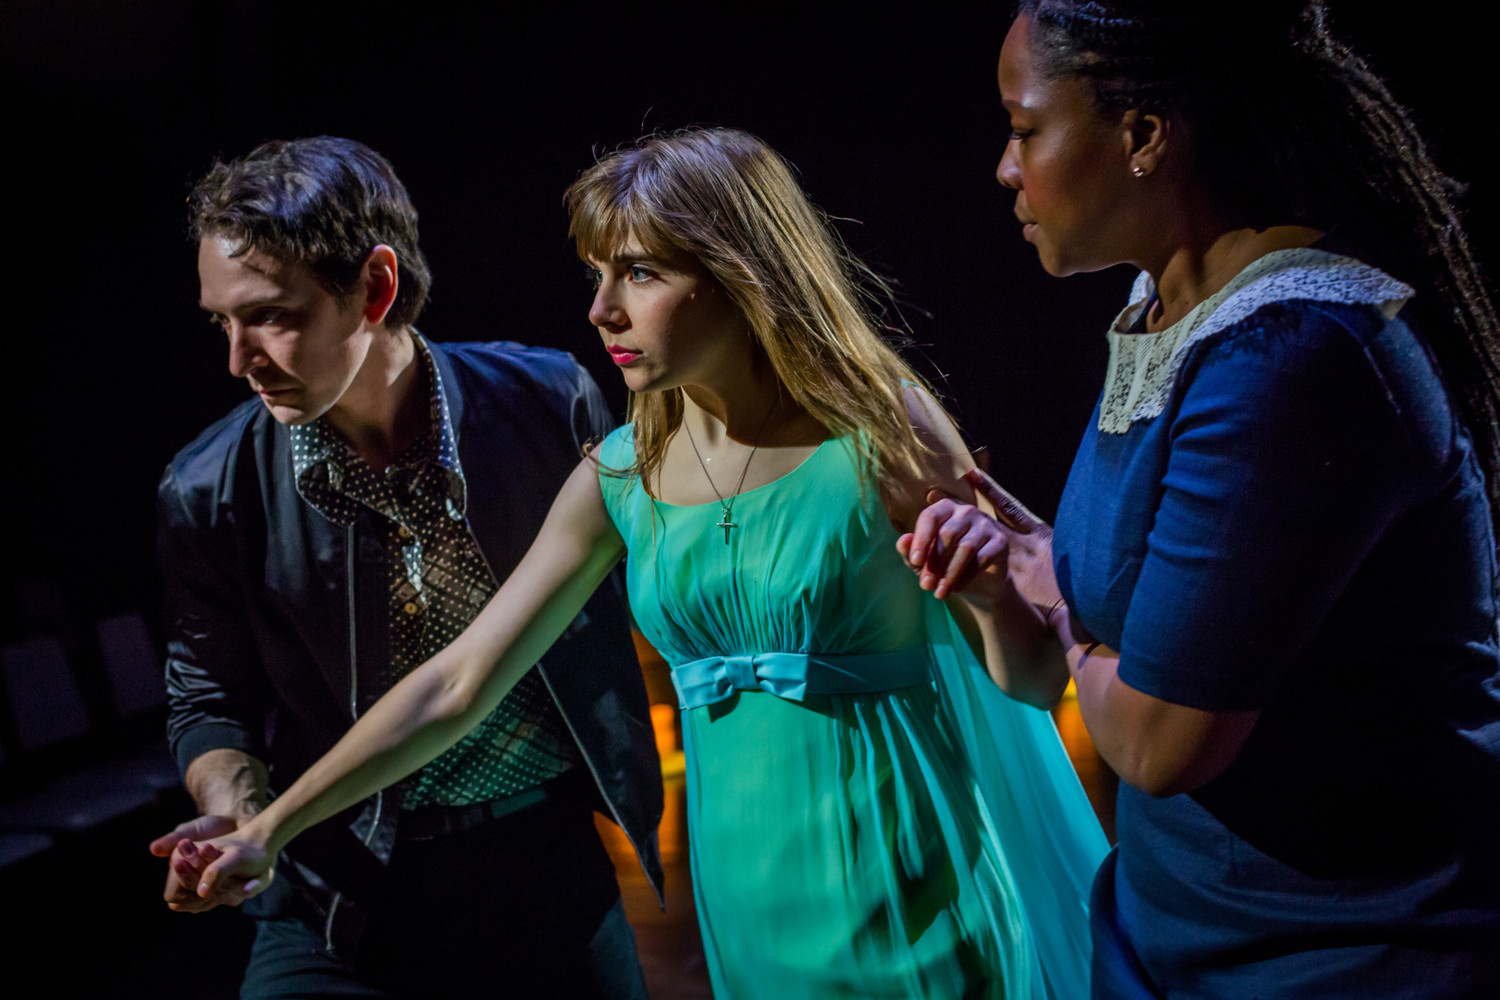 BWW Review: 'TIS PITY SHE'S A WHORE at Philadelphia Artists' Collective